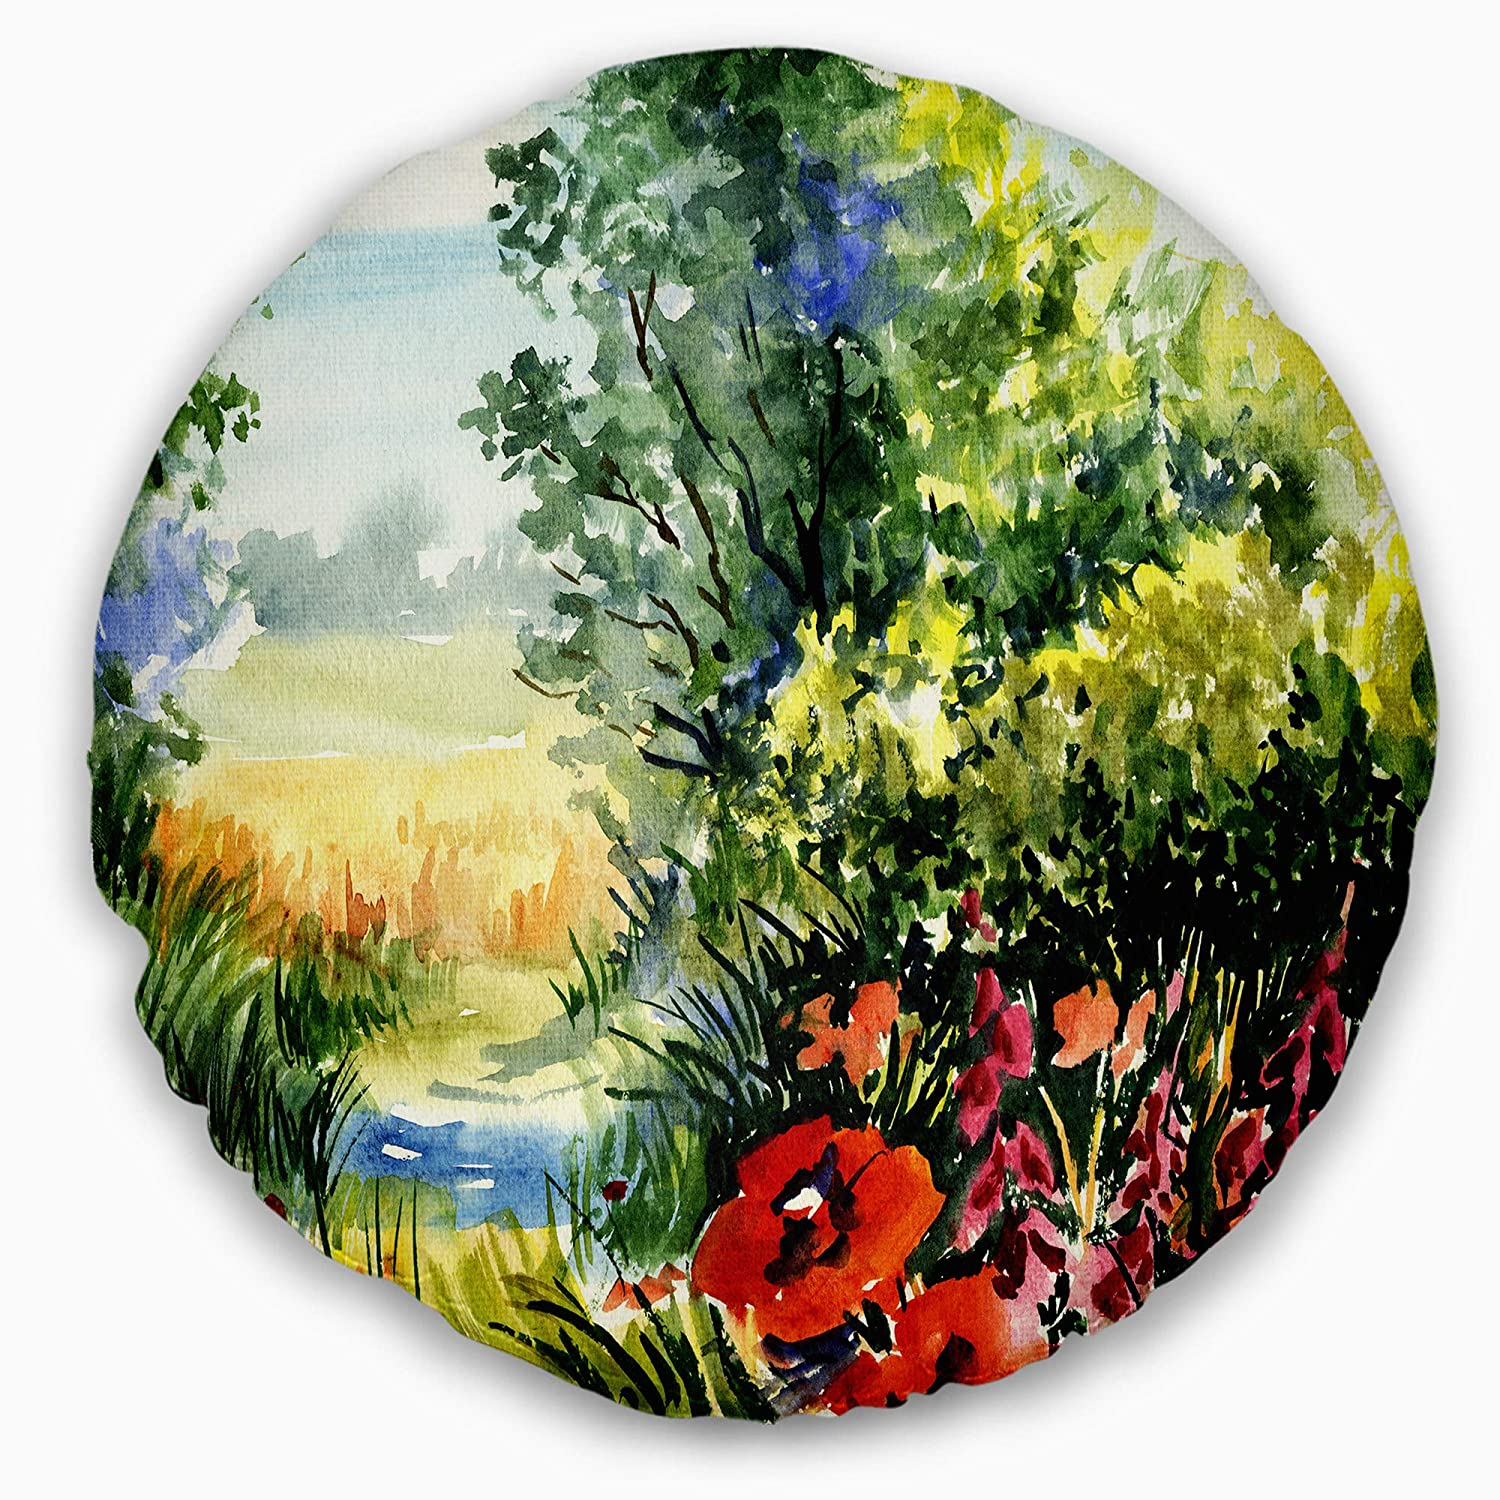 Insert Side Sofa Throw Pillow 16 Inches Designart CU6214-16-16-C Watercolor Flowers Landscape Printed Round Cushion Cover for Living Room